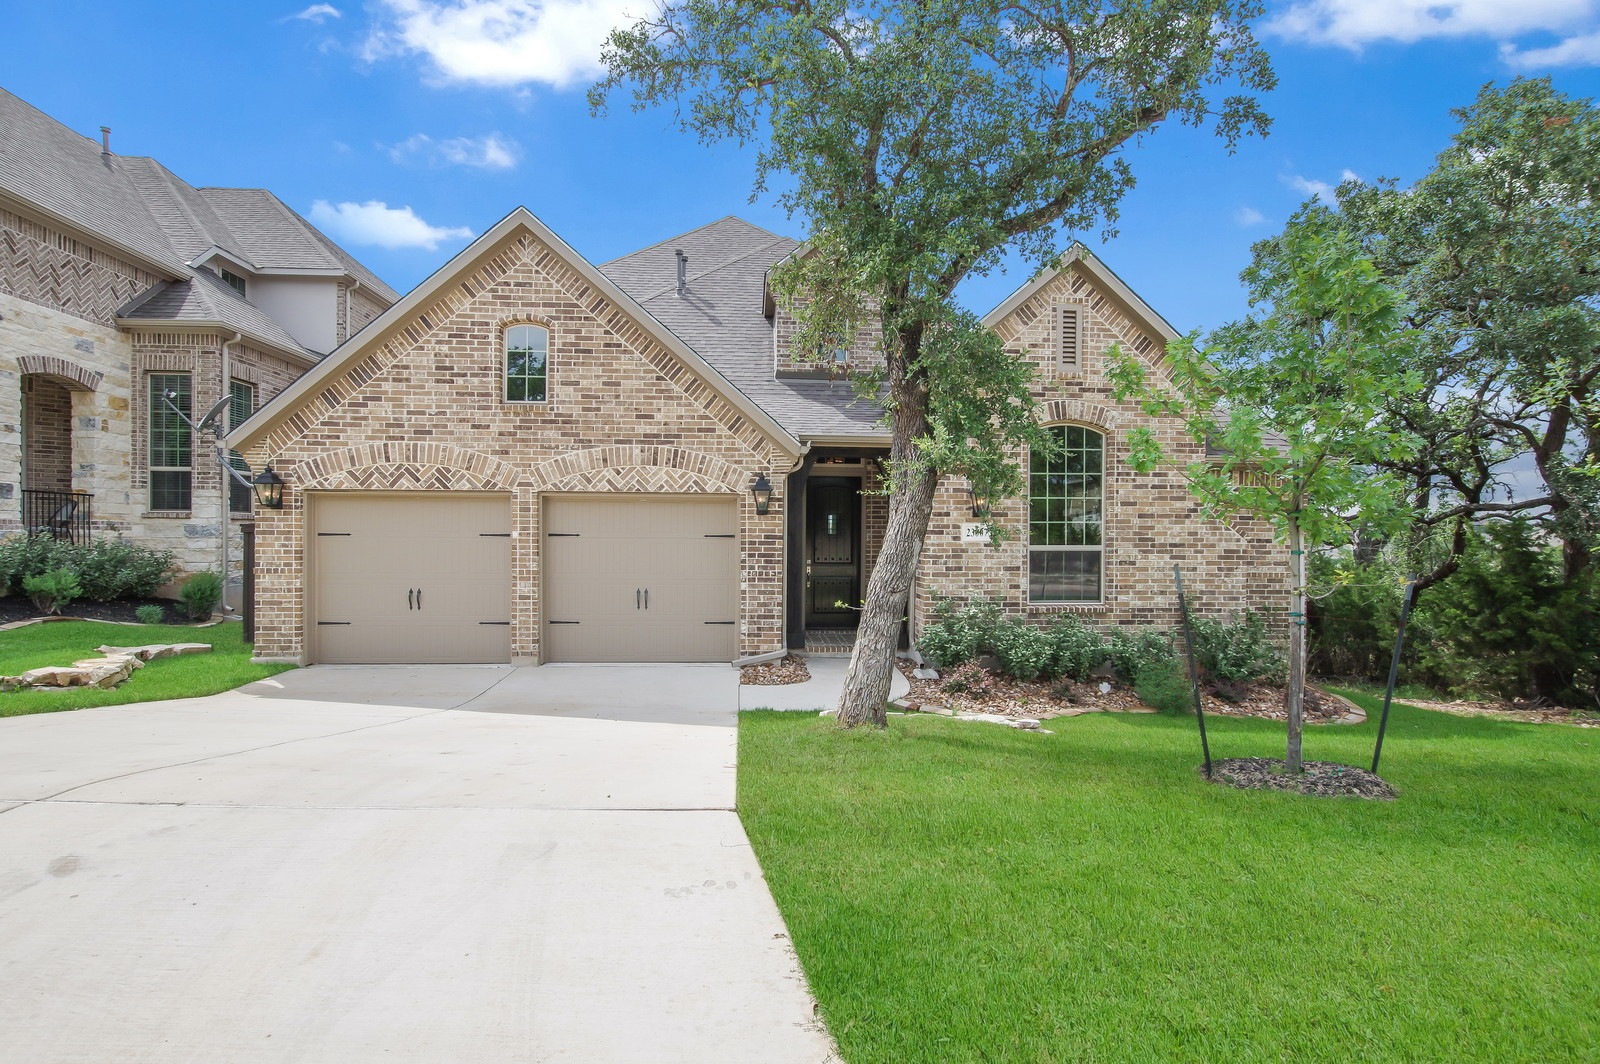 Single Family Home for Sale at Stunning Home in Coronado 23007 Emerald Pass San Antonio, Texas 78258 United States